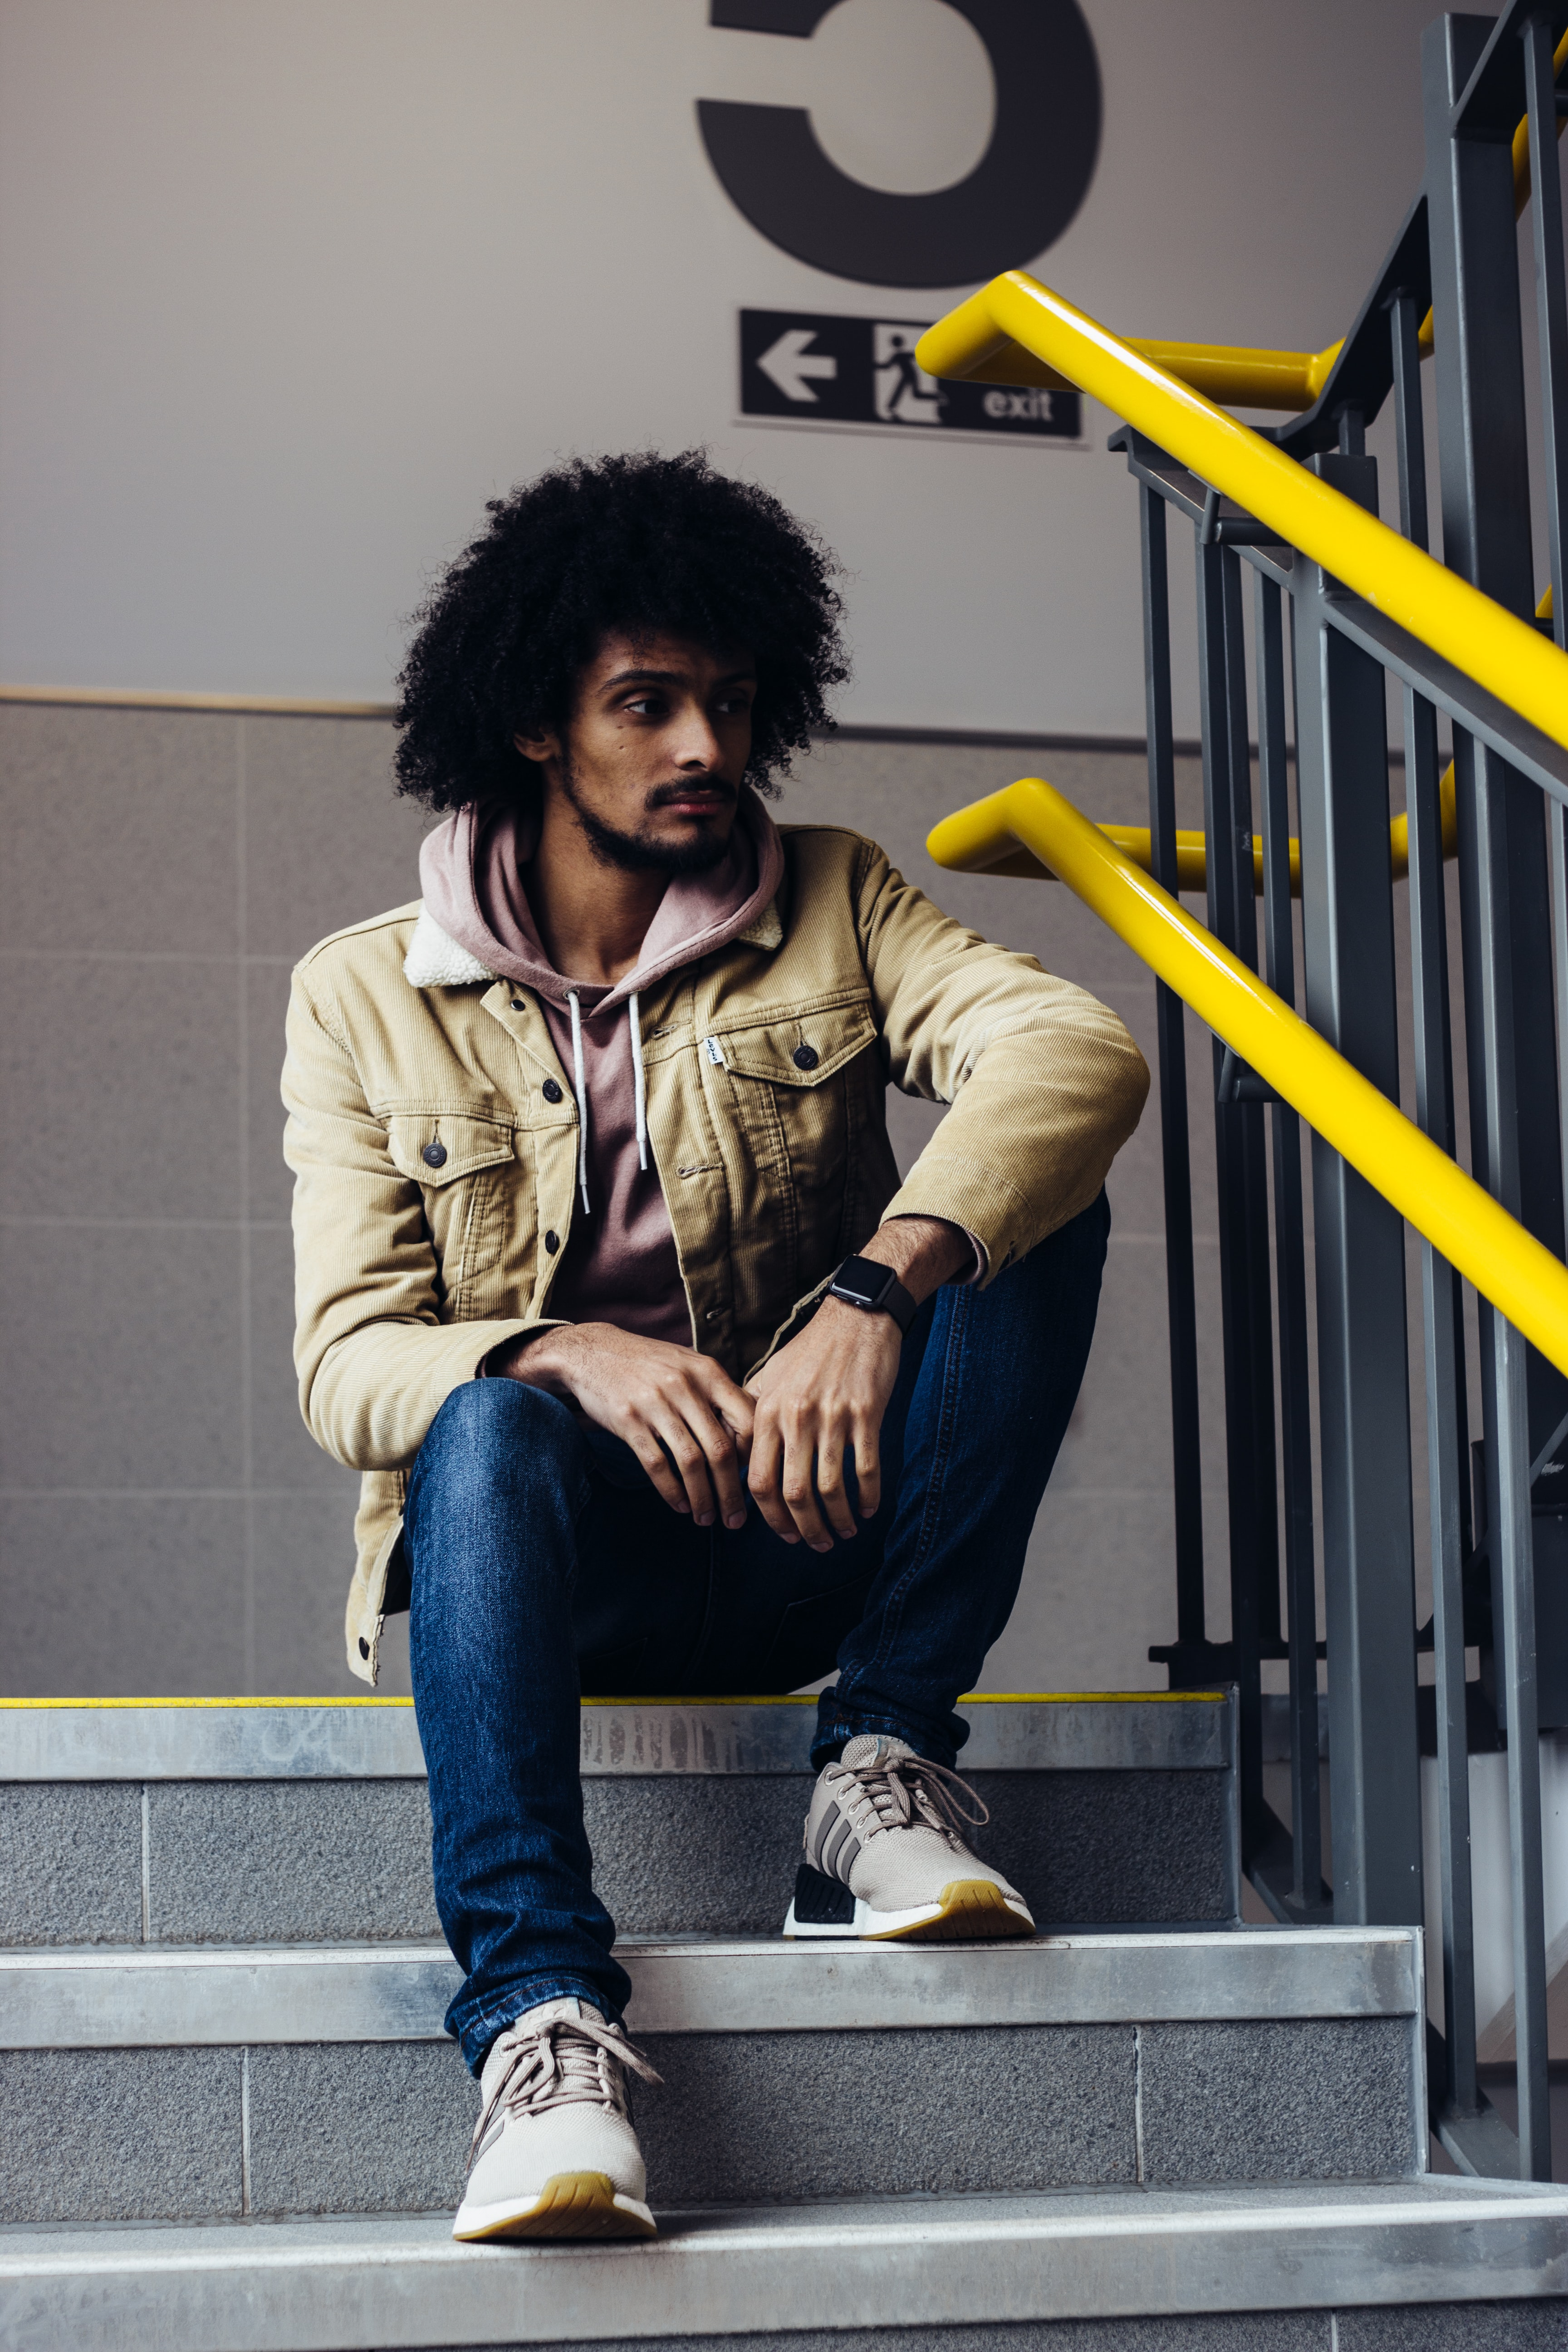 man in zip-up jacket sitting on staircase